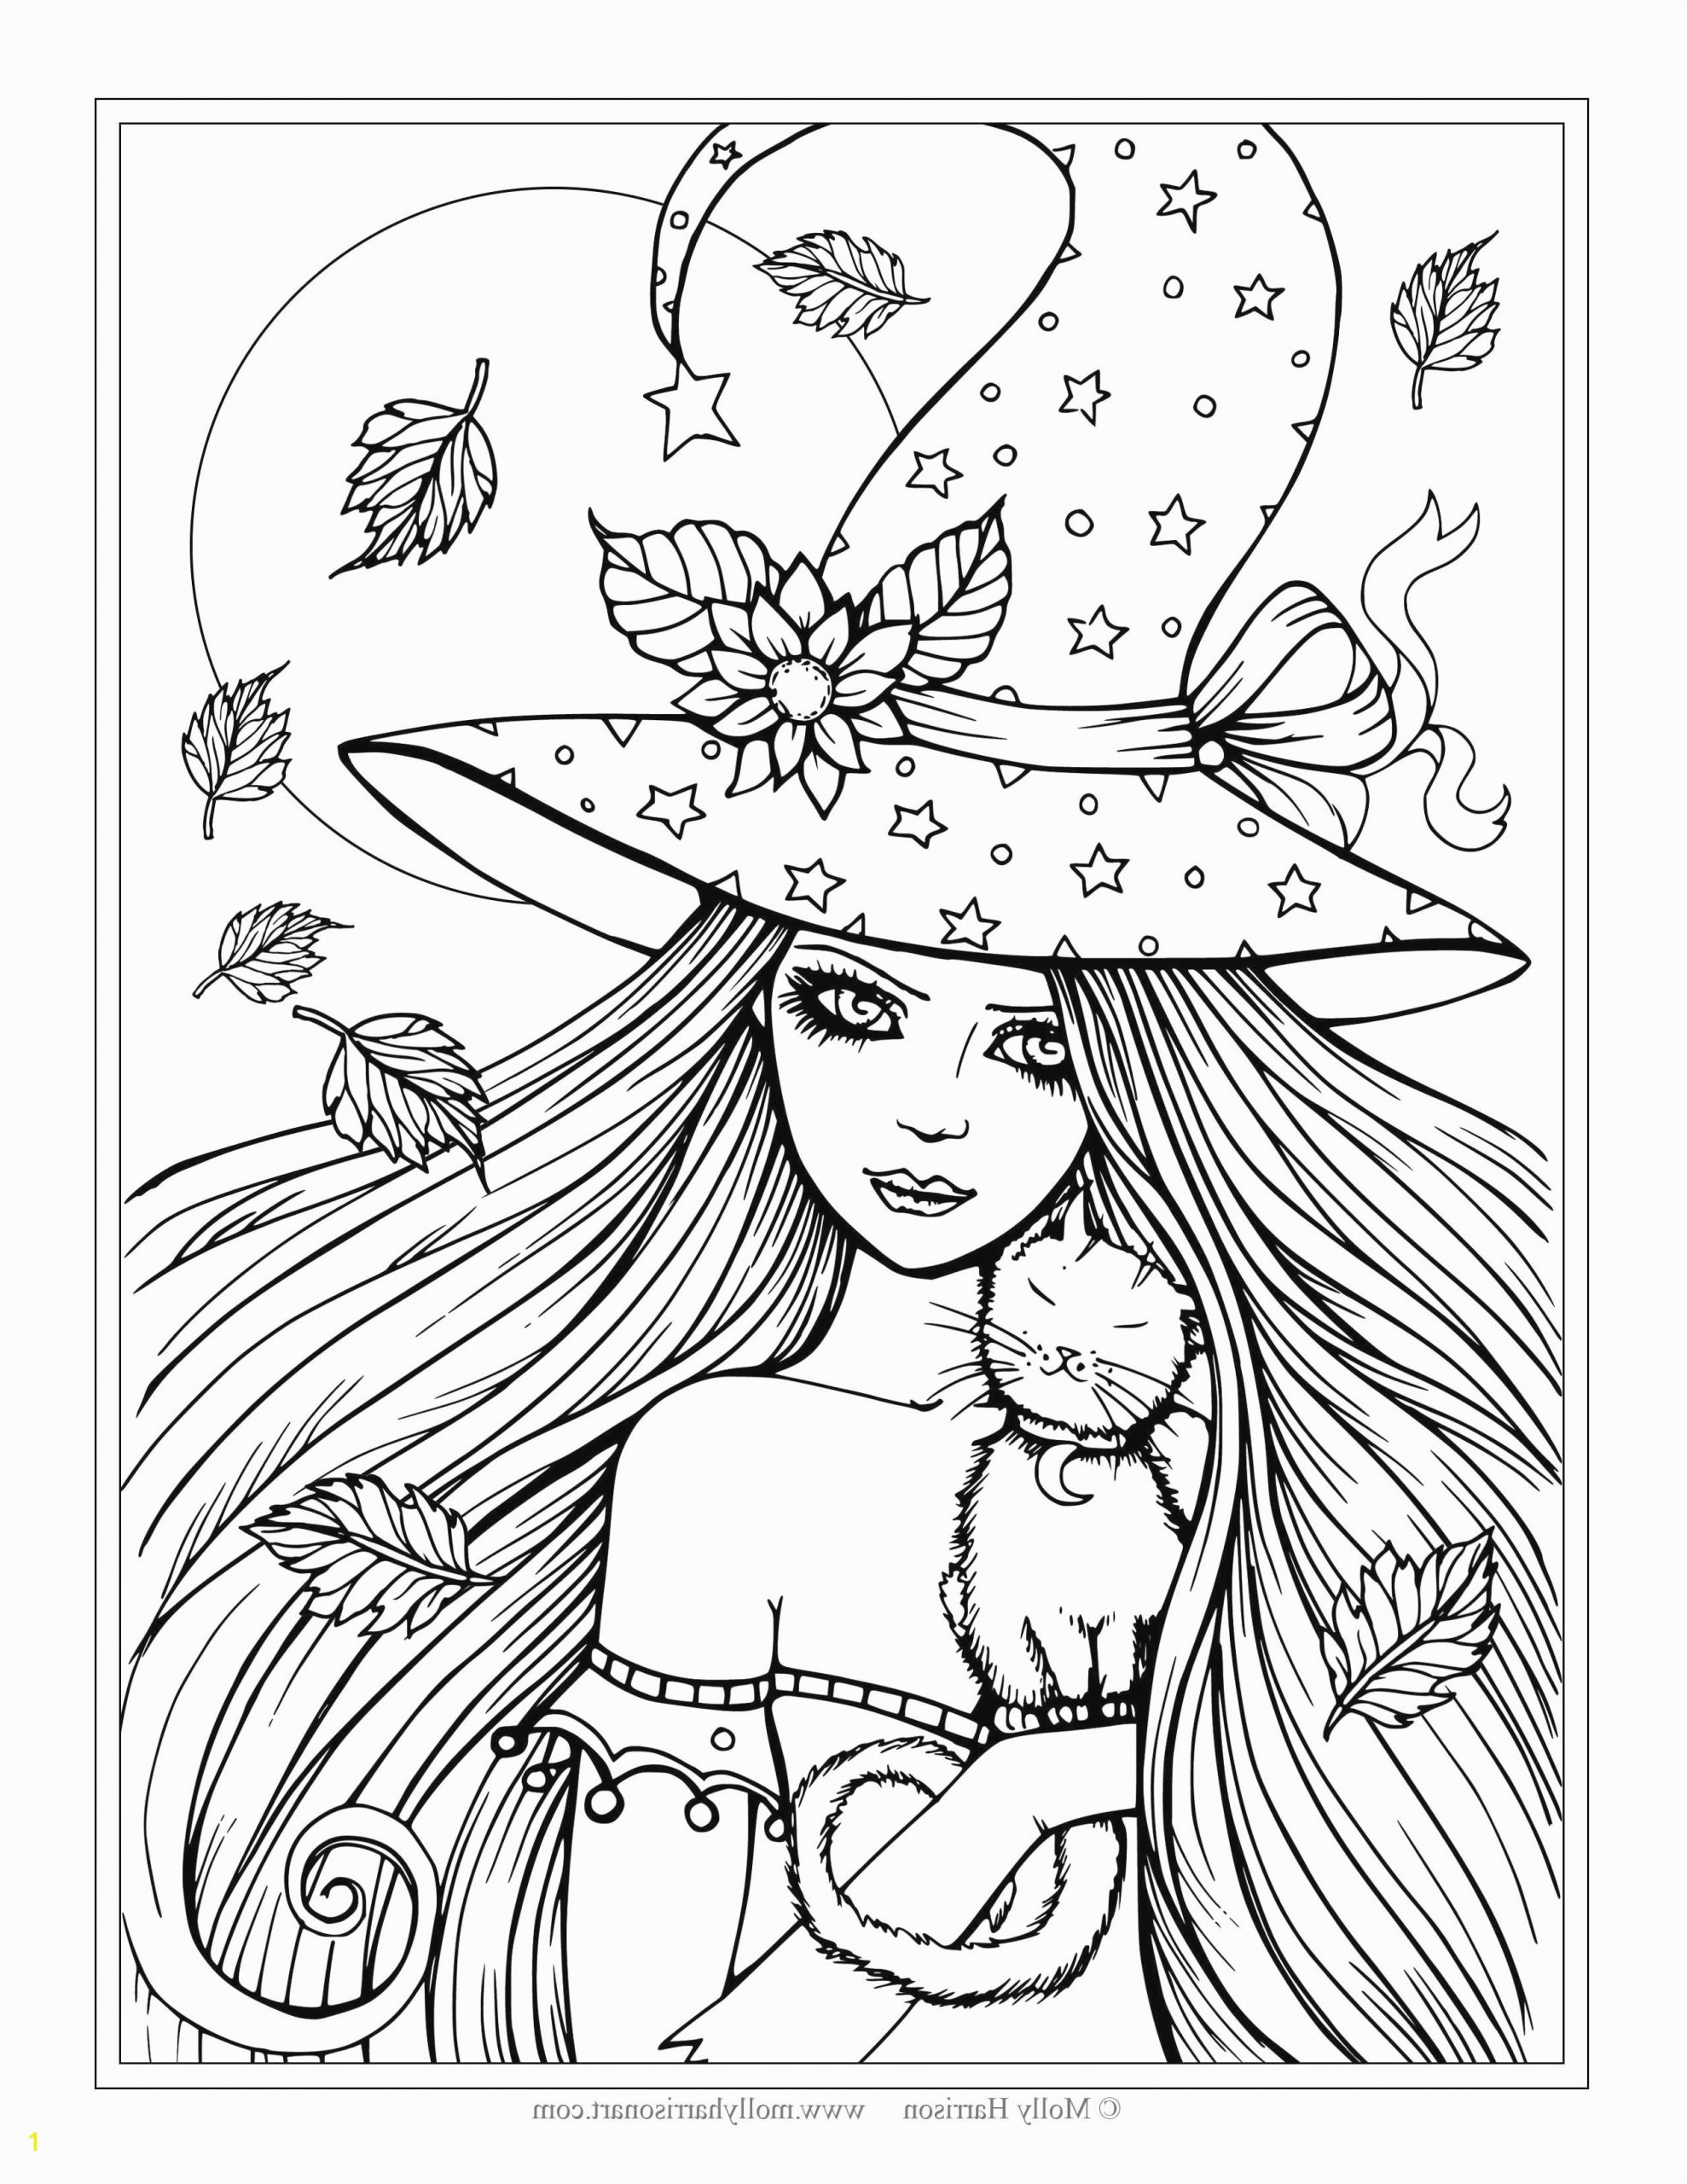 valentines free coloring page beautiful gallery mario color pages witch coloring page lovely crayola pages 0d of valentines free coloring page